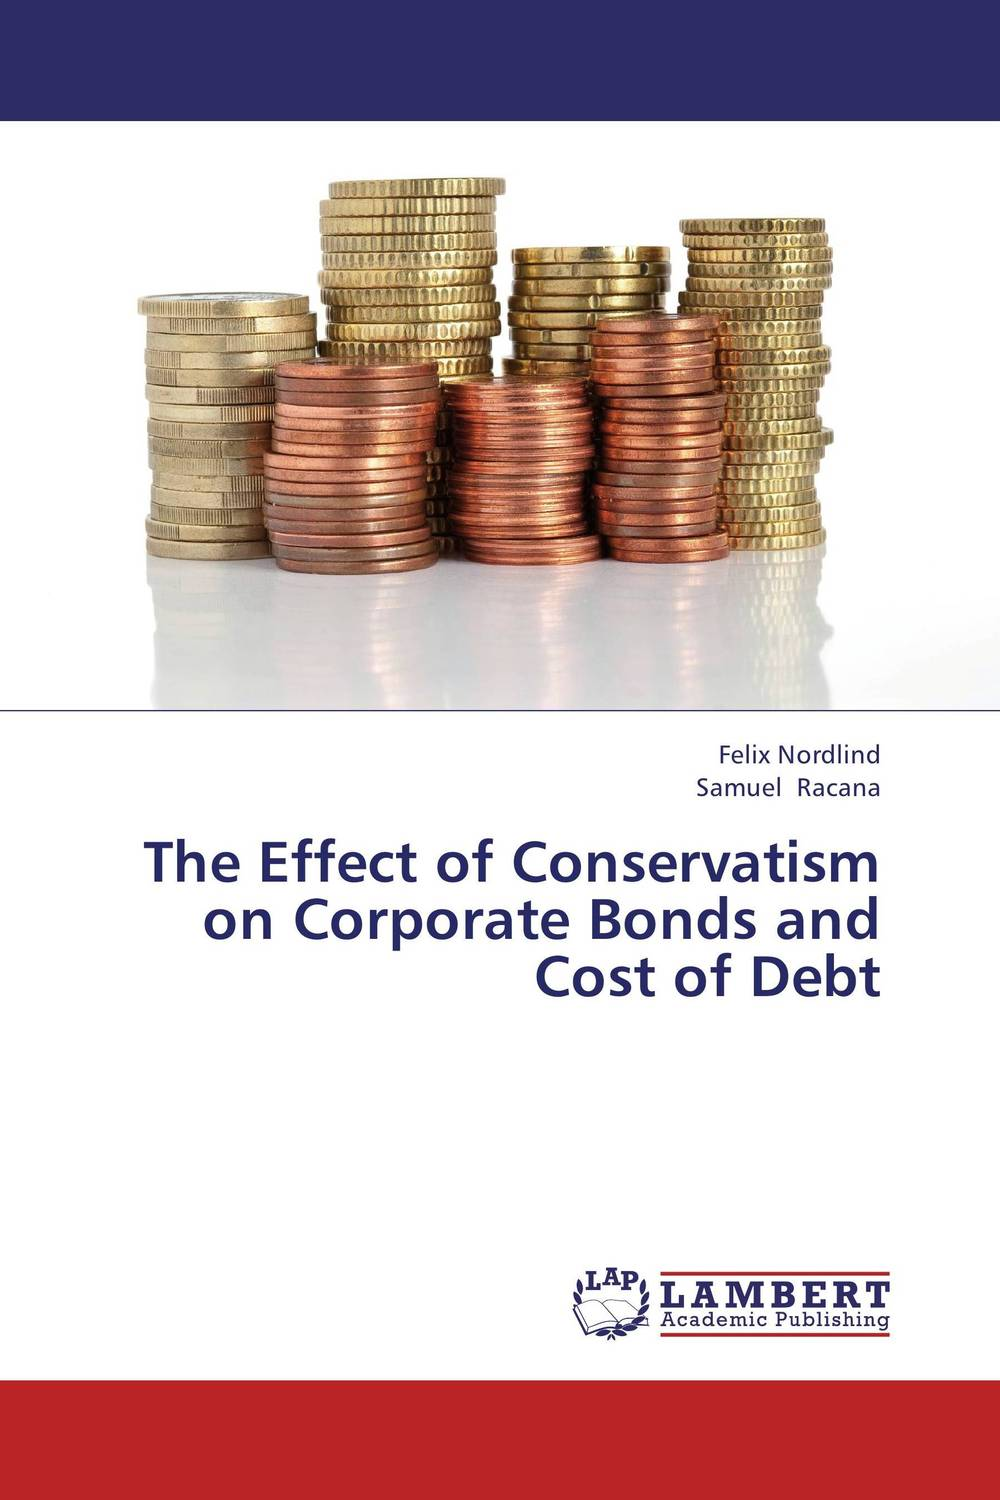 The Effect of Conservatism on Corporate Bonds and Cost of Debt dysfunctions in accounting and the role of corporate lobbying